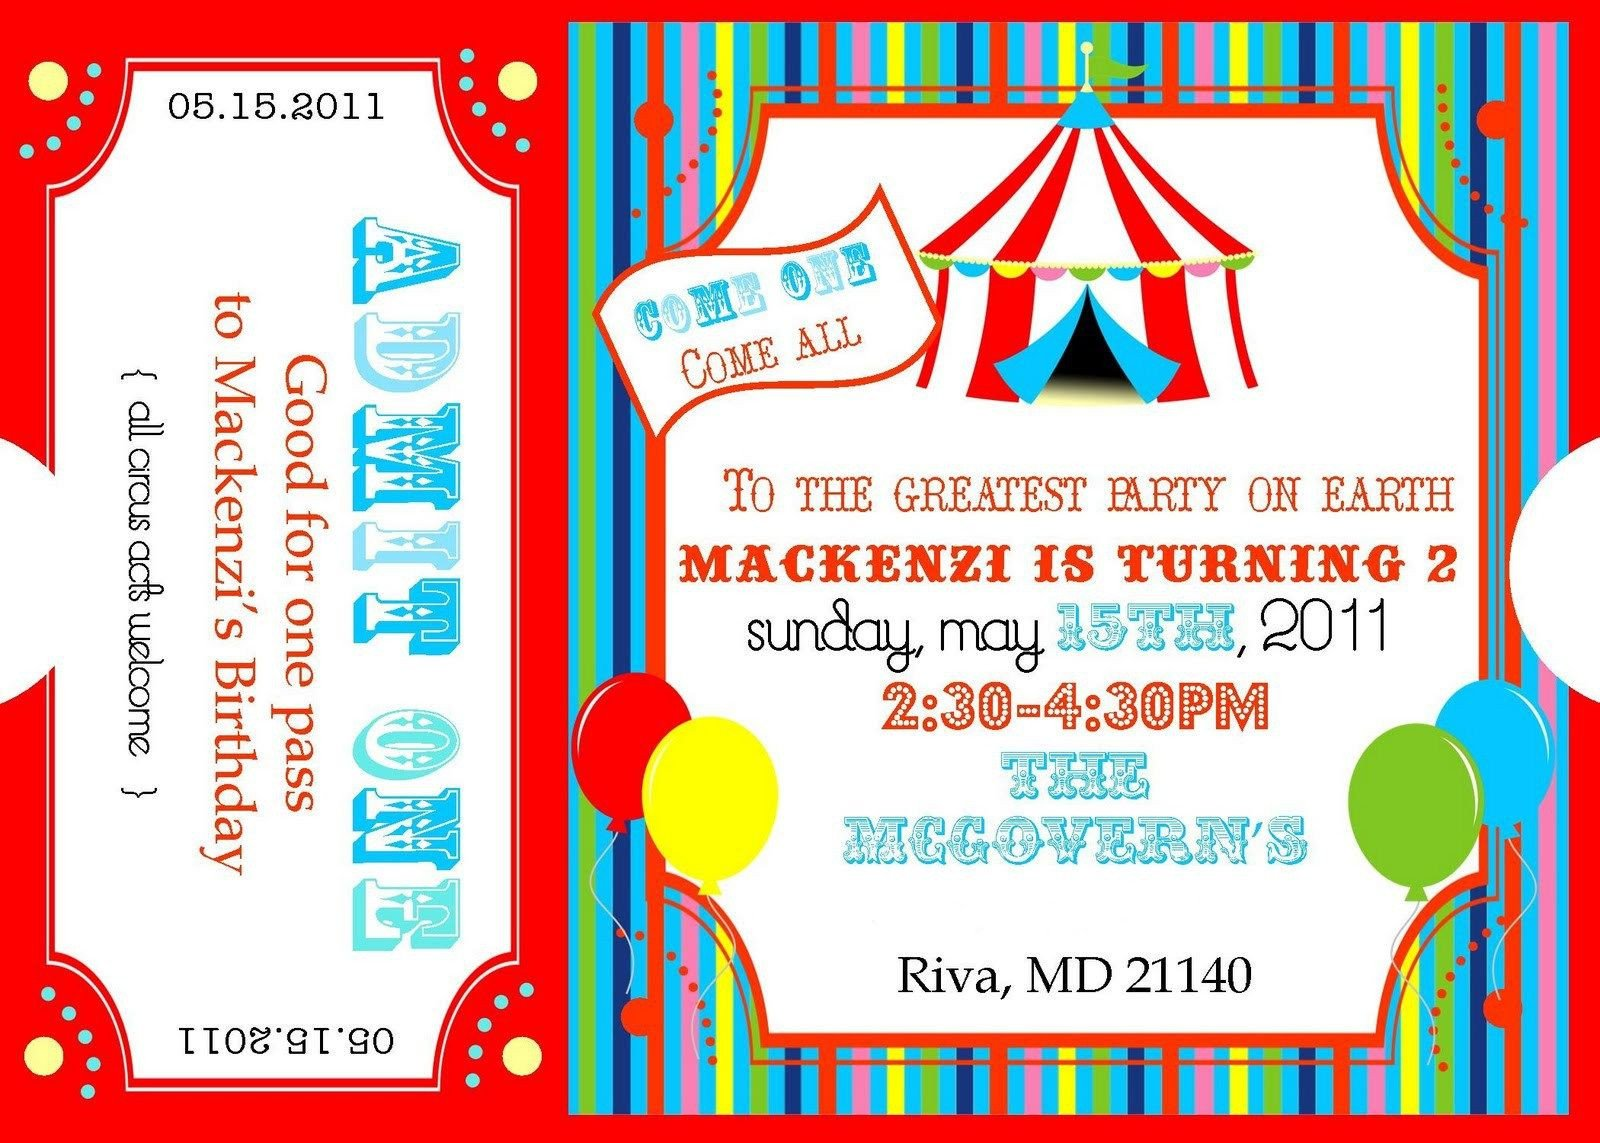 Carnival Ticket Invitation Template Free Free Printable Circus Invitation Templates Please forgive